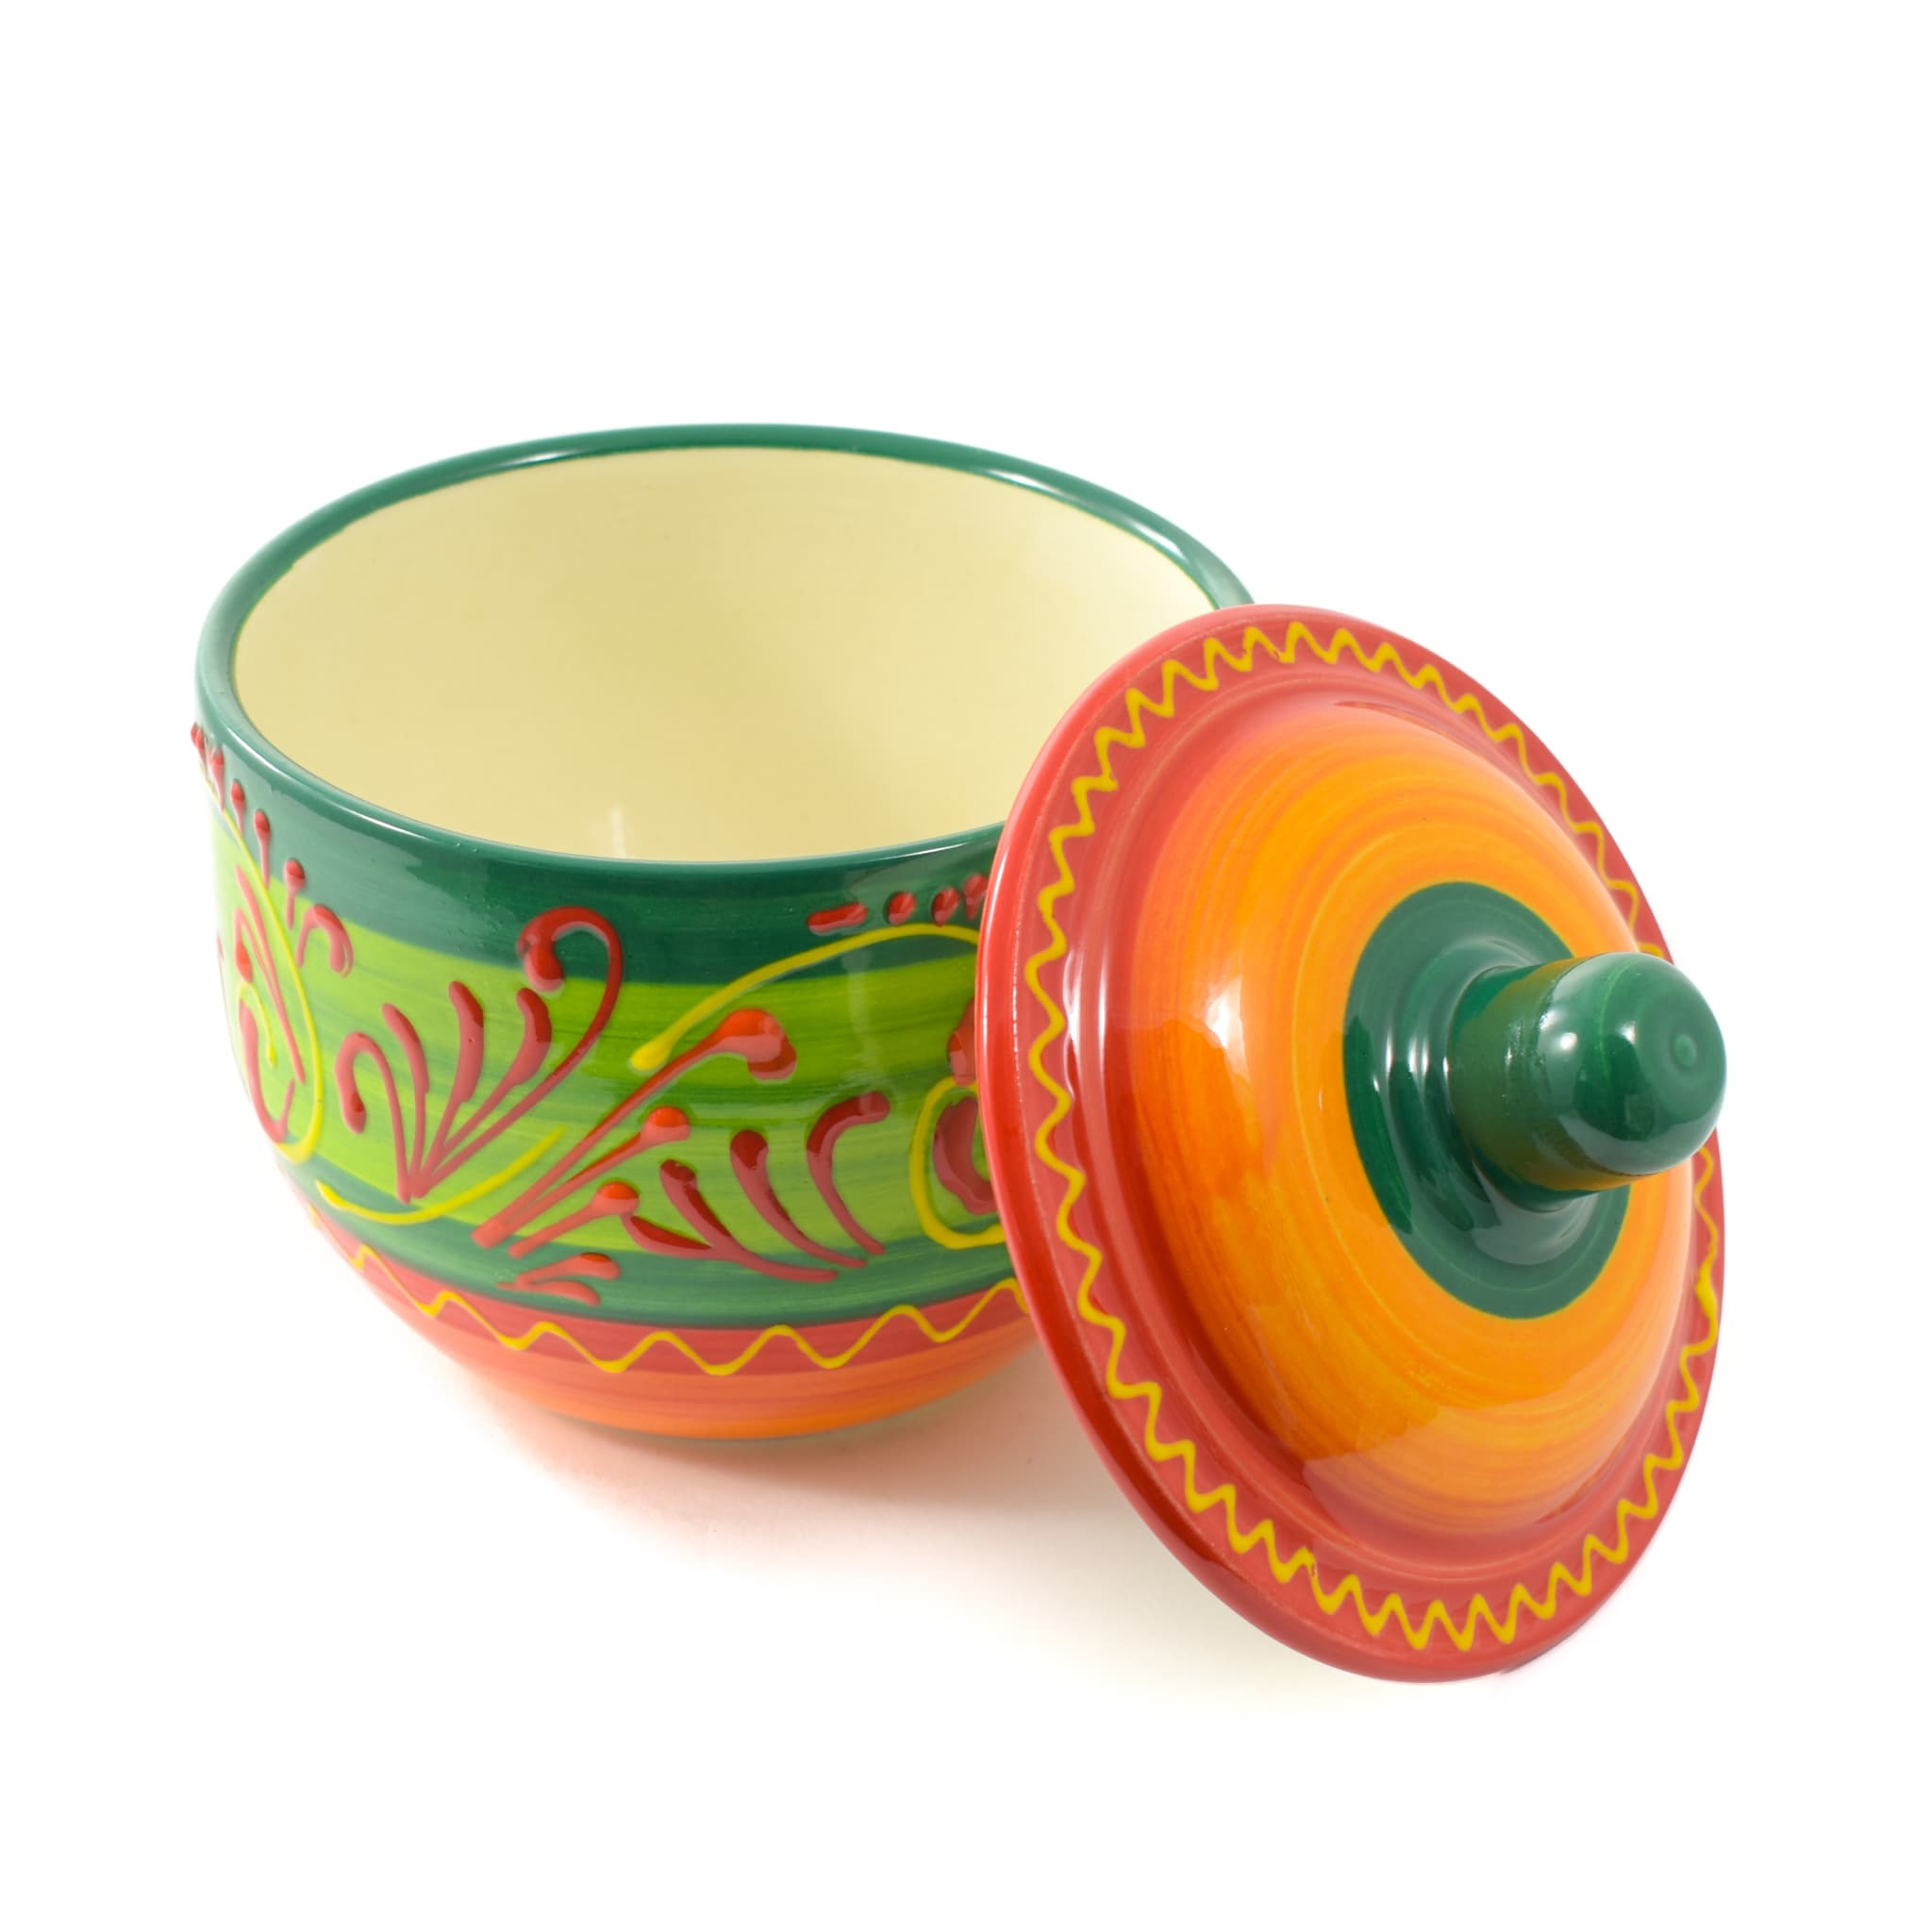 Sous Chef Jerez Salt Cellar Painted Spanish Tableware